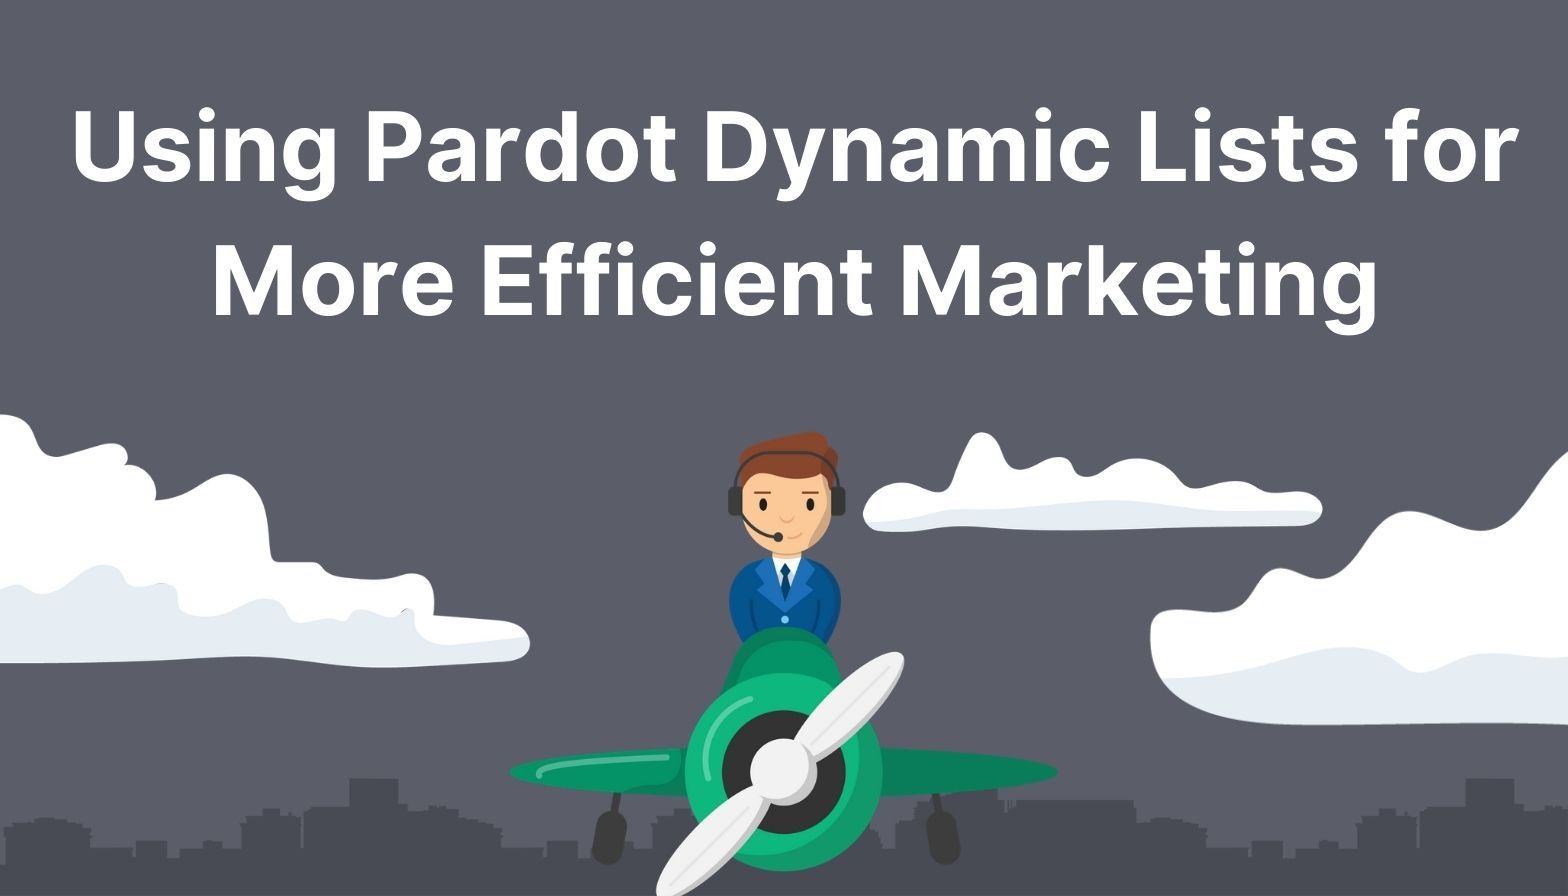 Using Pardot Dynamic Lists for More Efficient Marketing